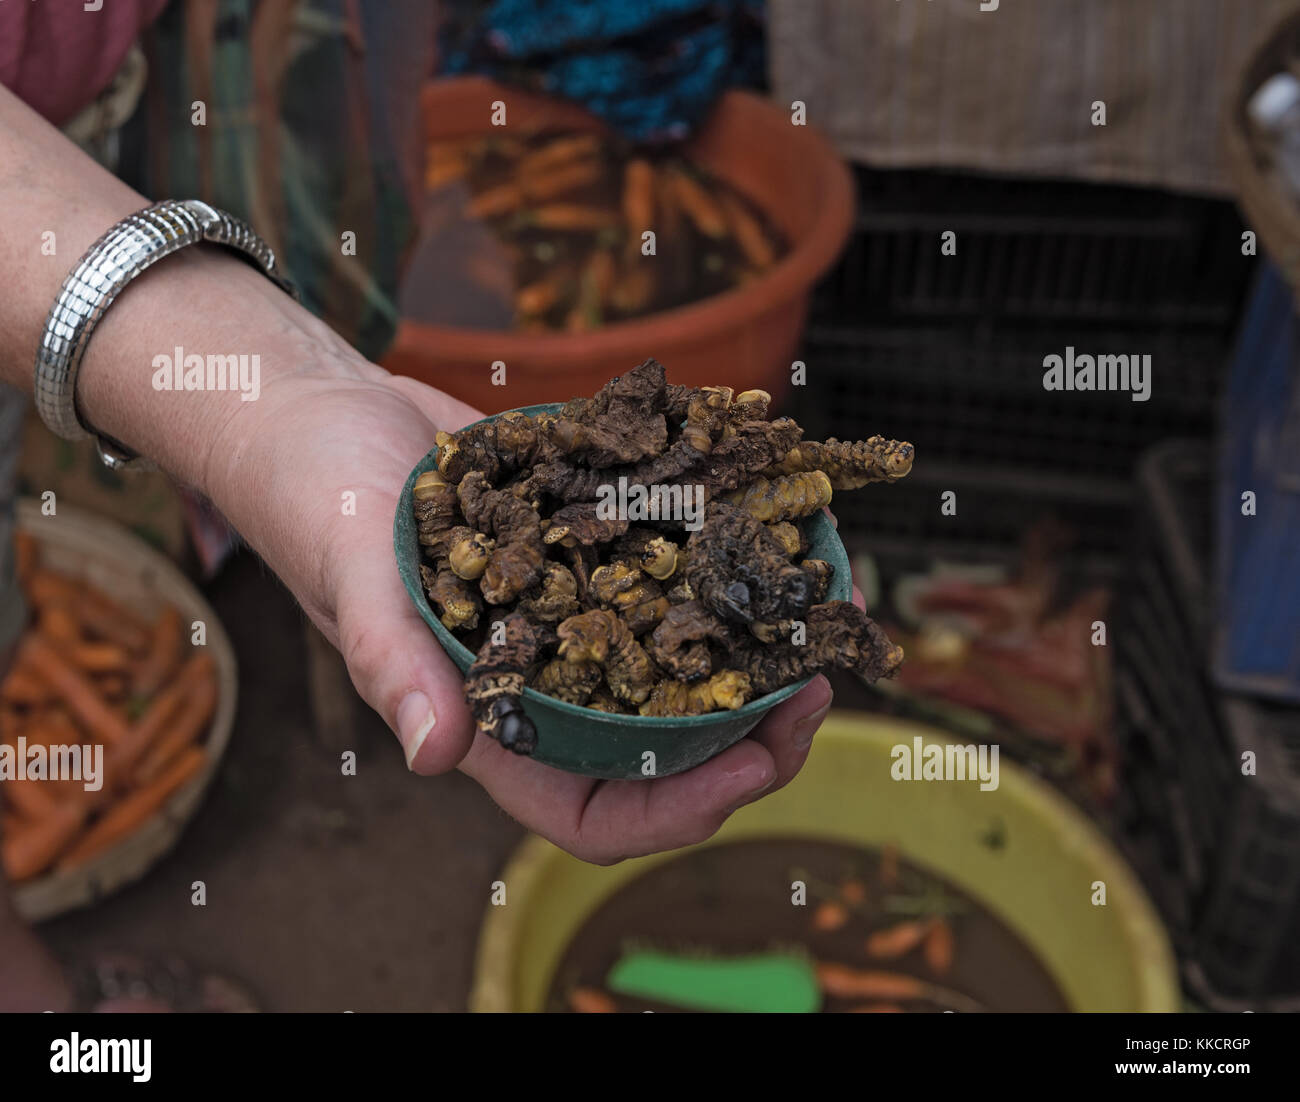 small bowl of roasted mopane caterpillars, Gonimbrasia belina at the market in livingstone, Zambia - Stock Image